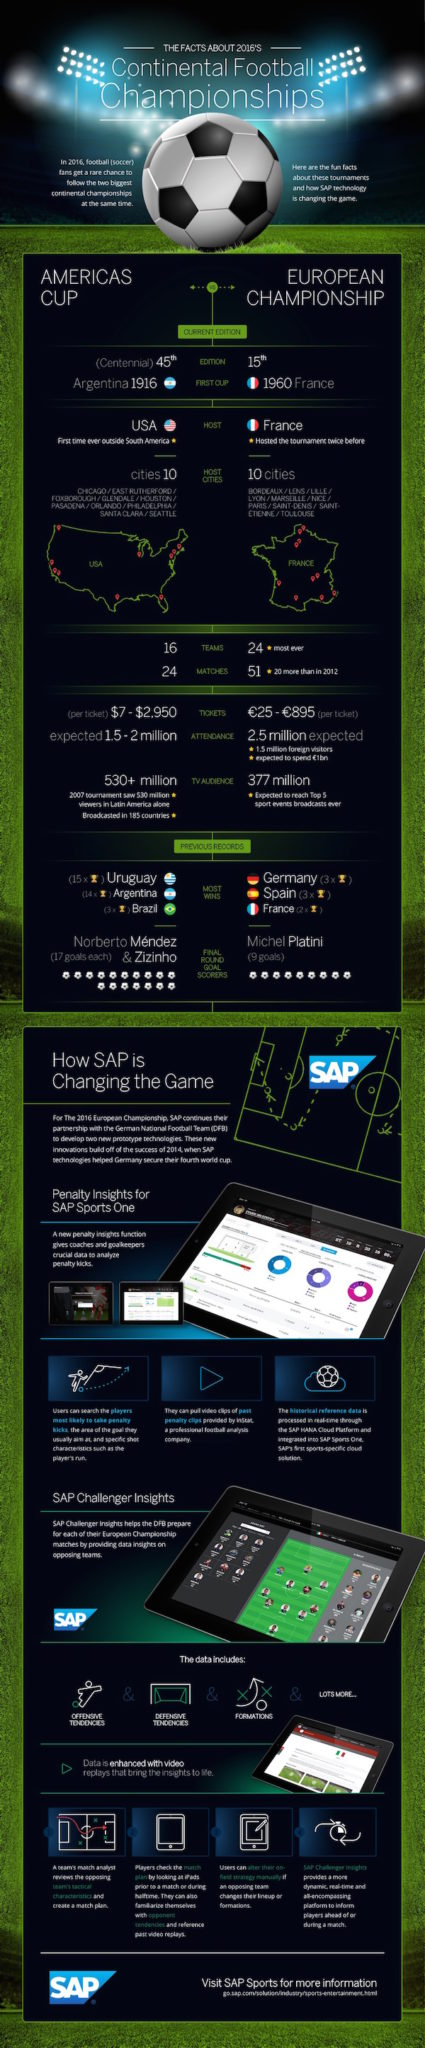 Soccer has gone global... SAP changing football infographic